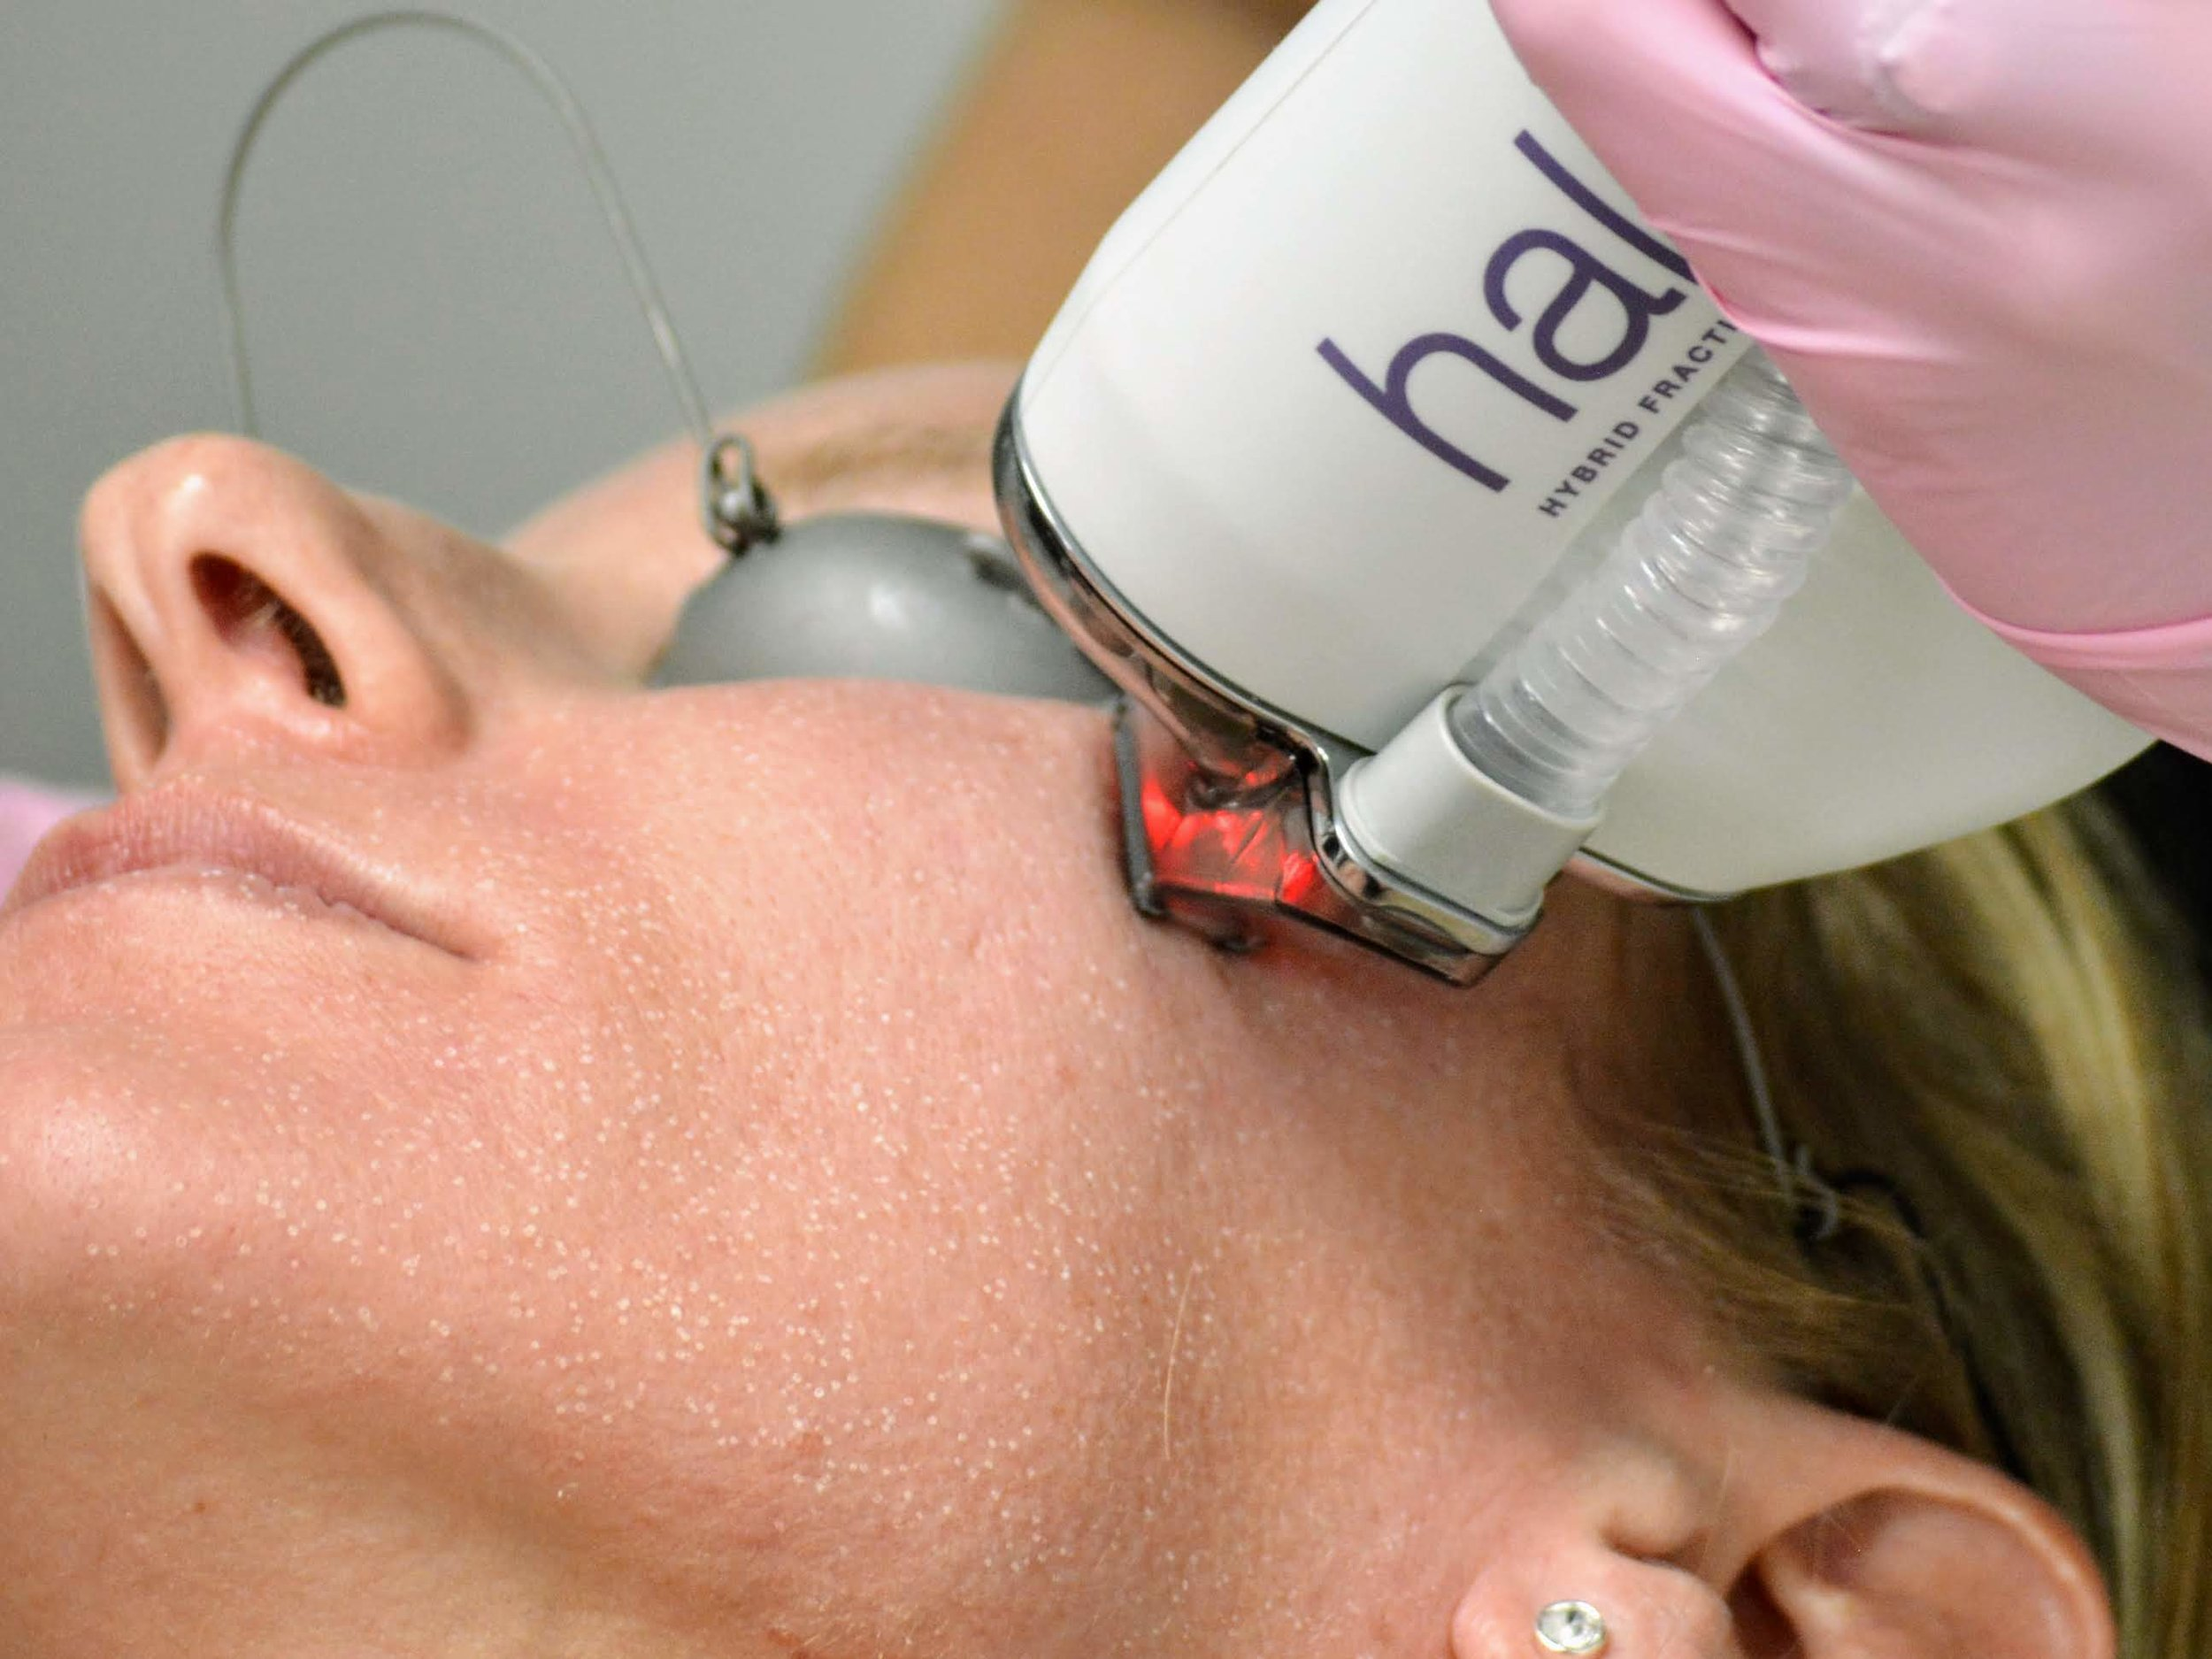 halo-laser-skin-resurfacing